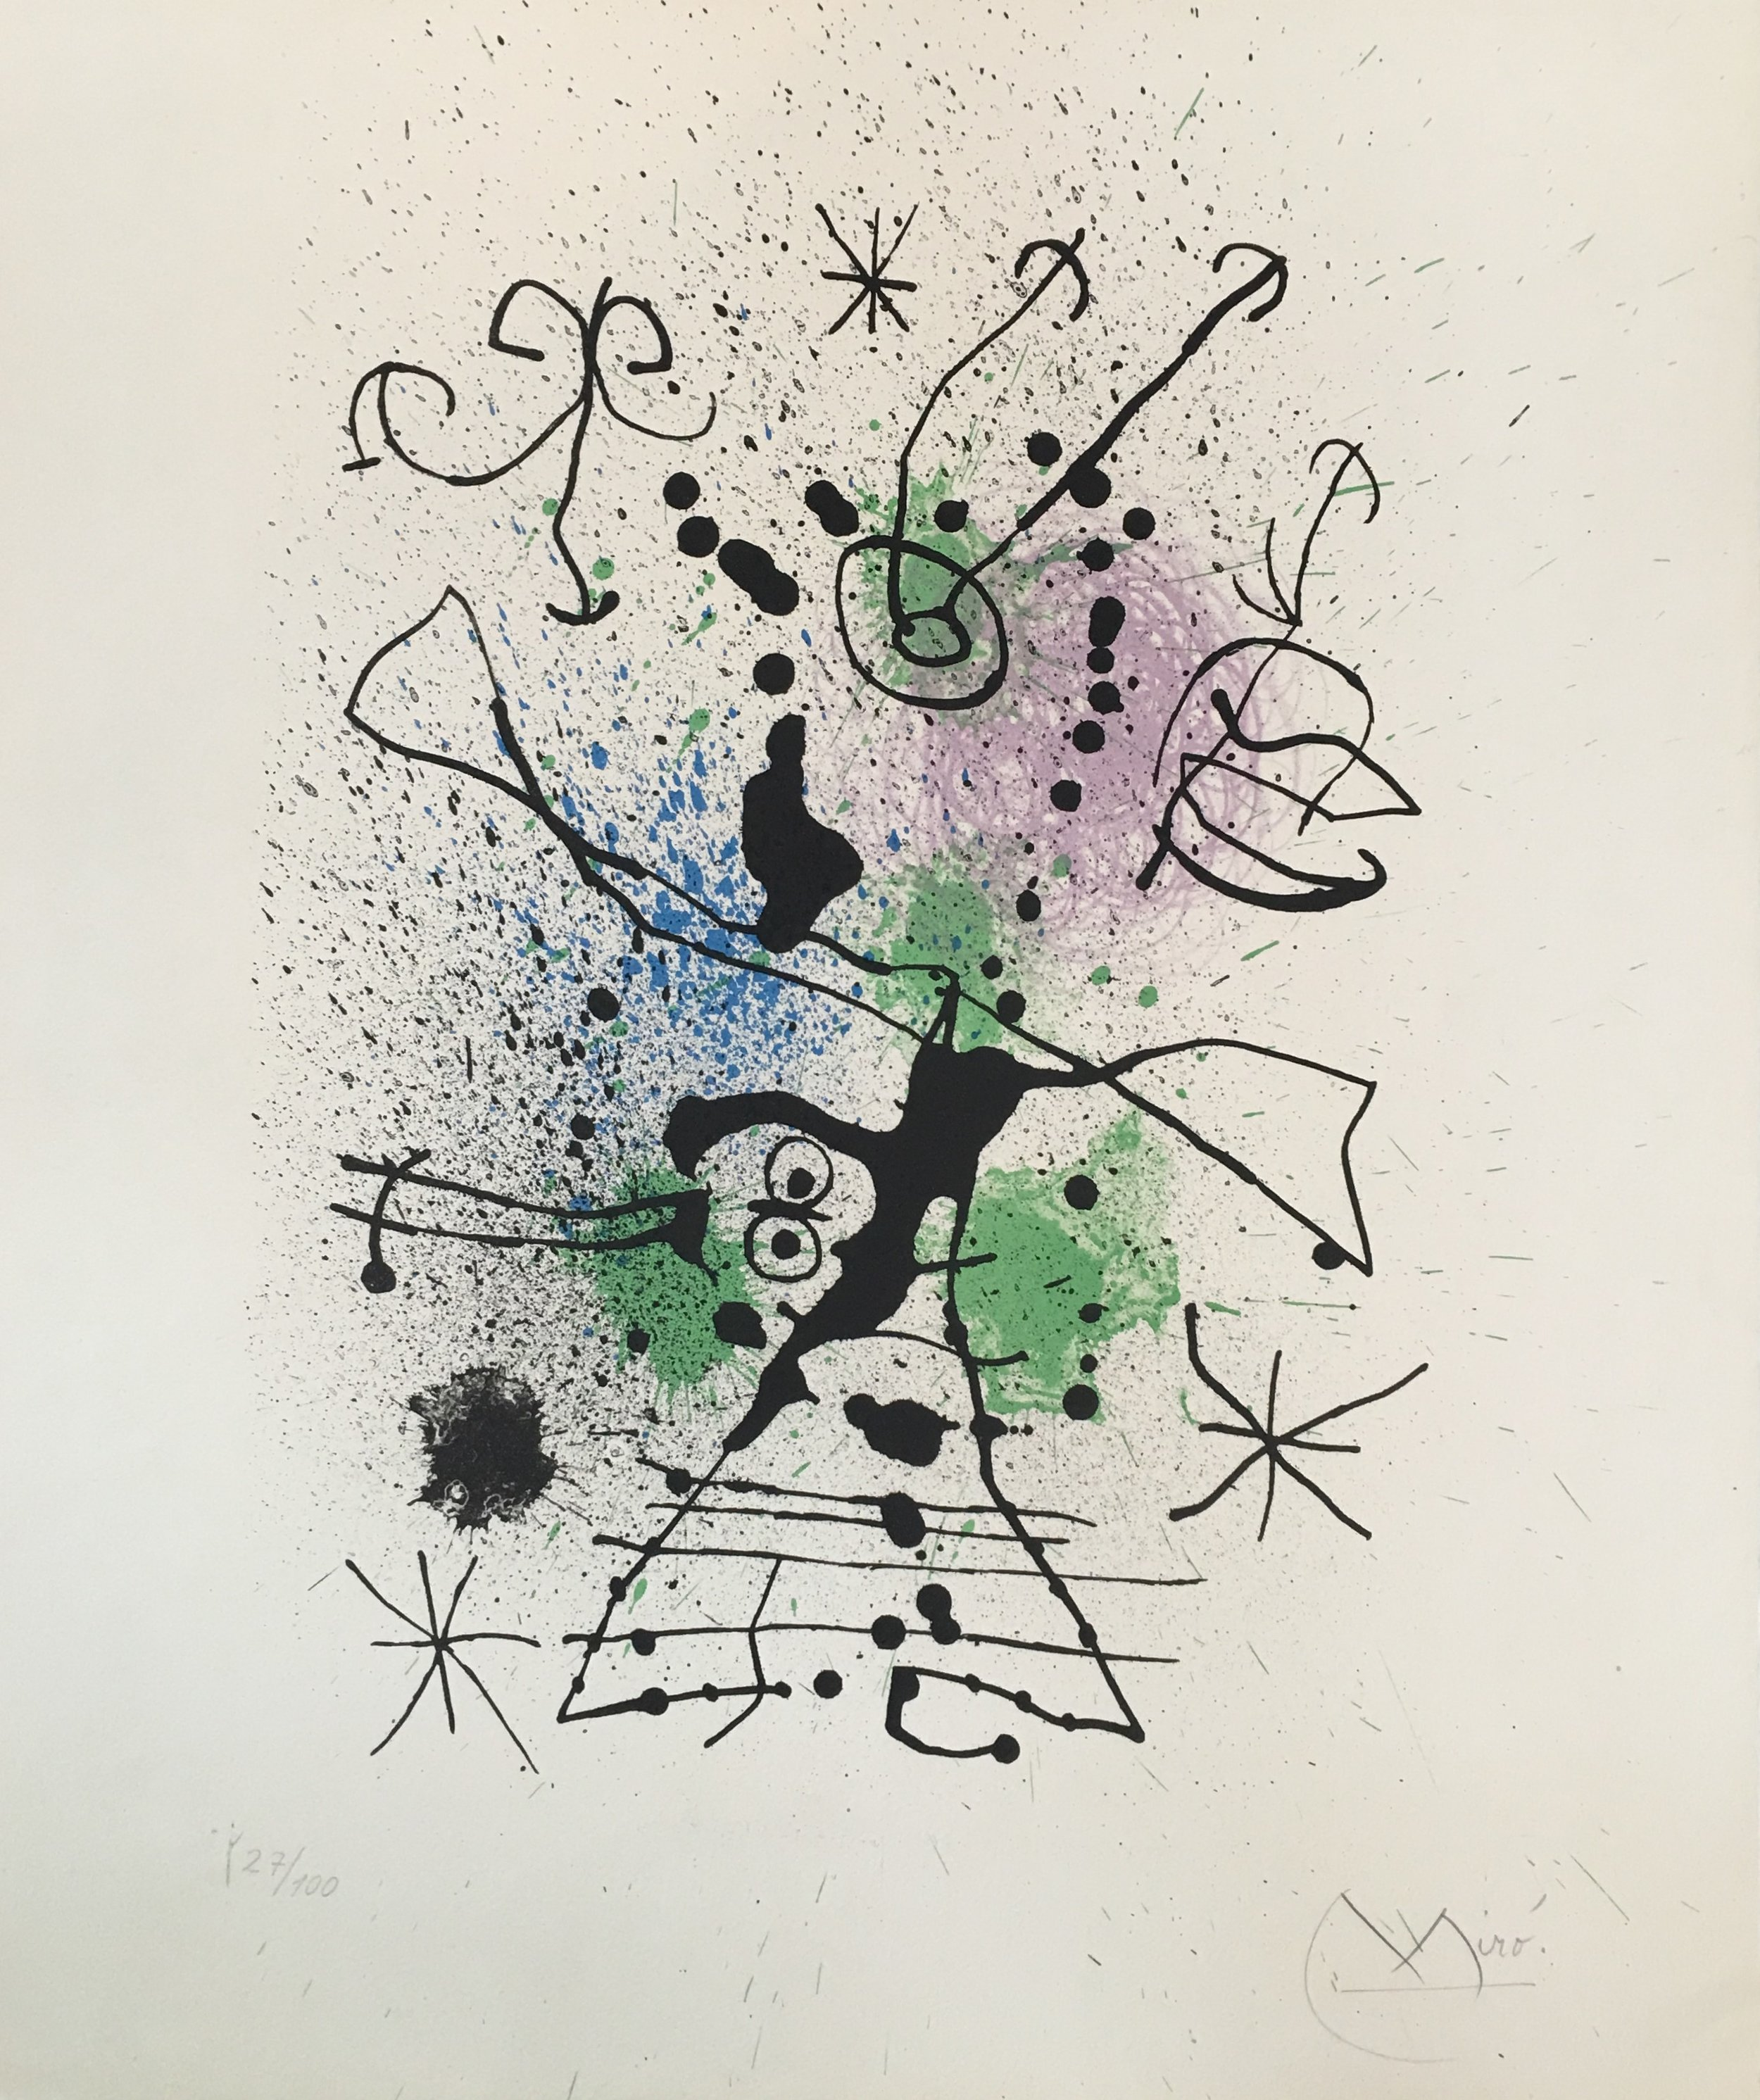 Lithograph with black, green, purple and blue titled,  The Huntress  by Joan Miró